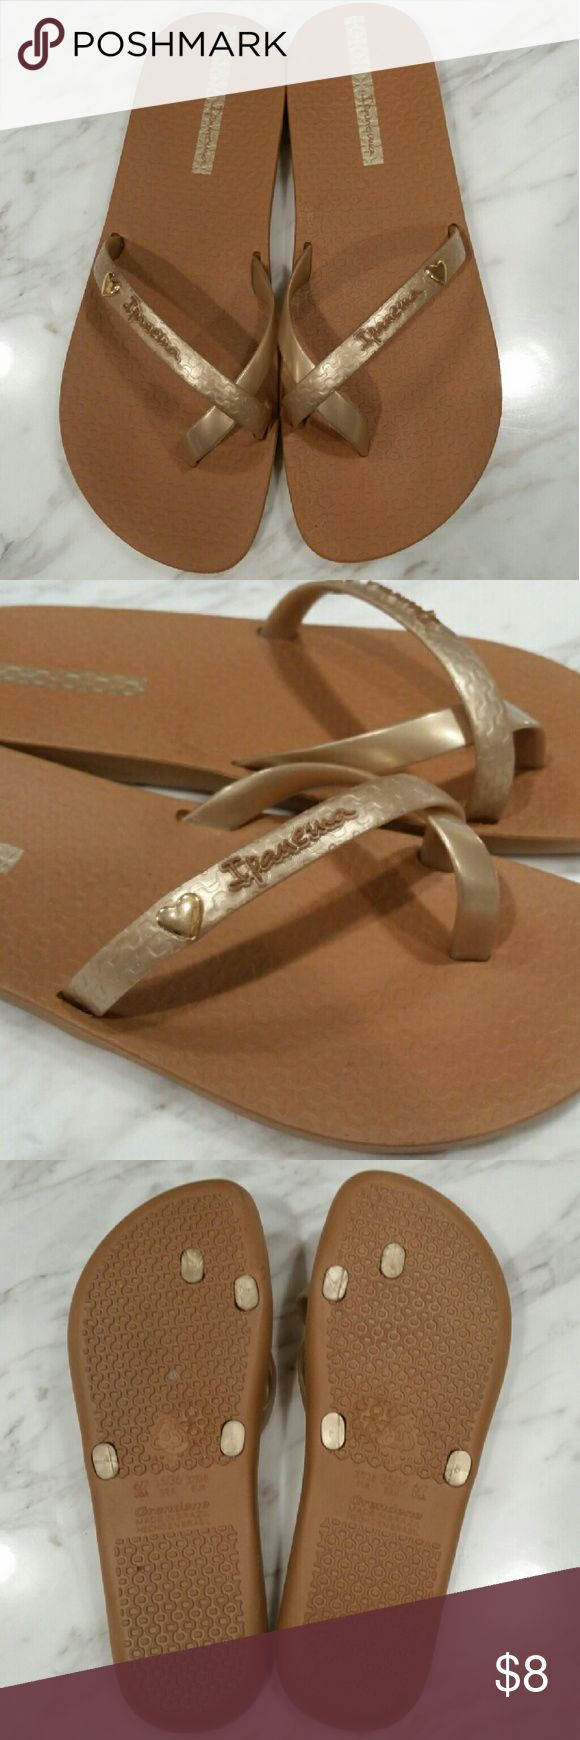 Ipanema flip flops Ipanema 'Neo Hit' flip flops. Sizing is 6/7. New, never worn. Bundle for a discount! Ipanema Shoes Sandals